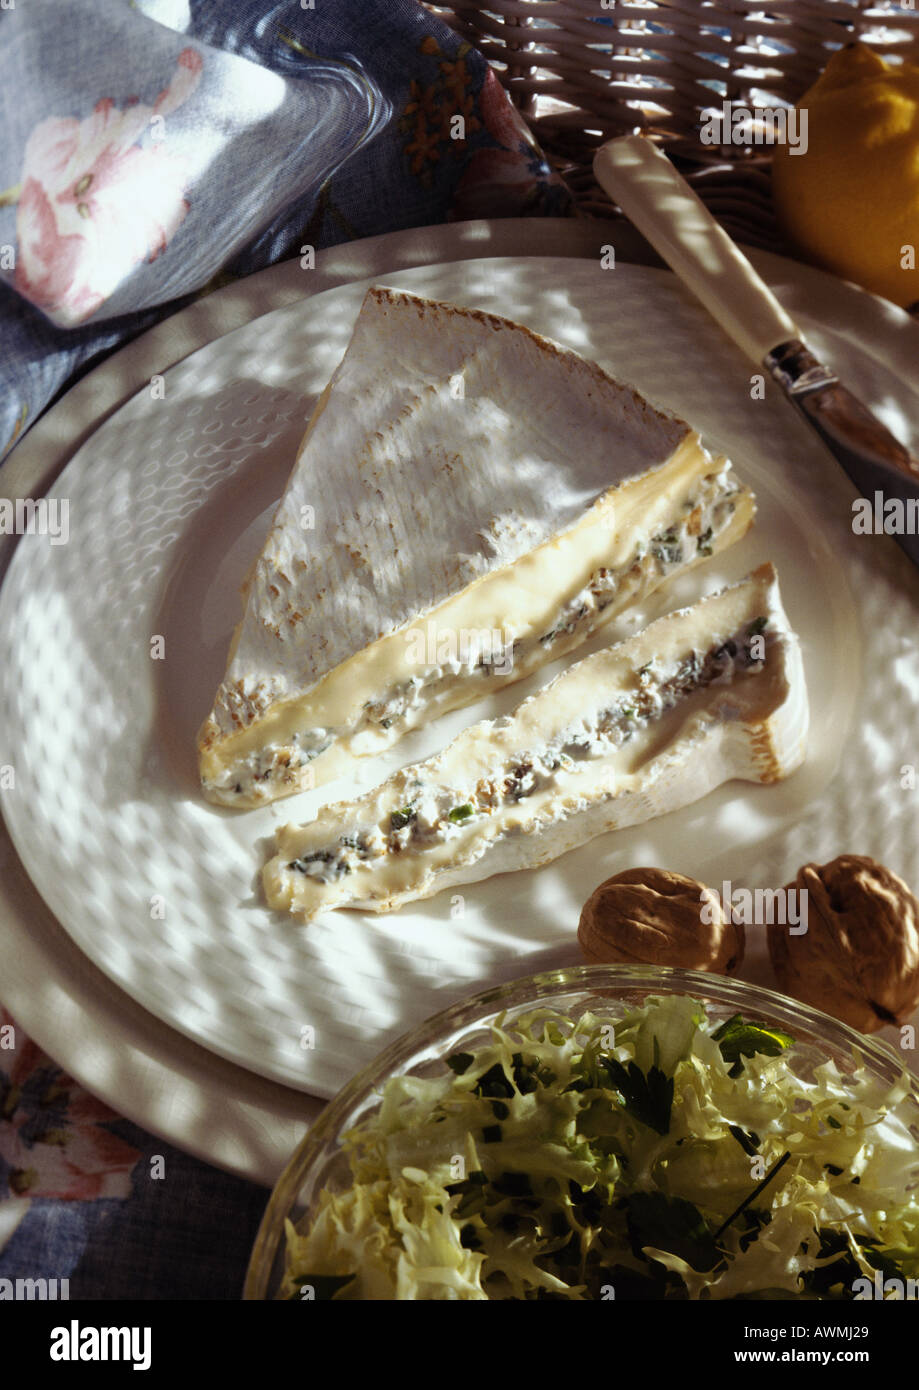 Stuffed brie on plate, high angle view - Stock Image